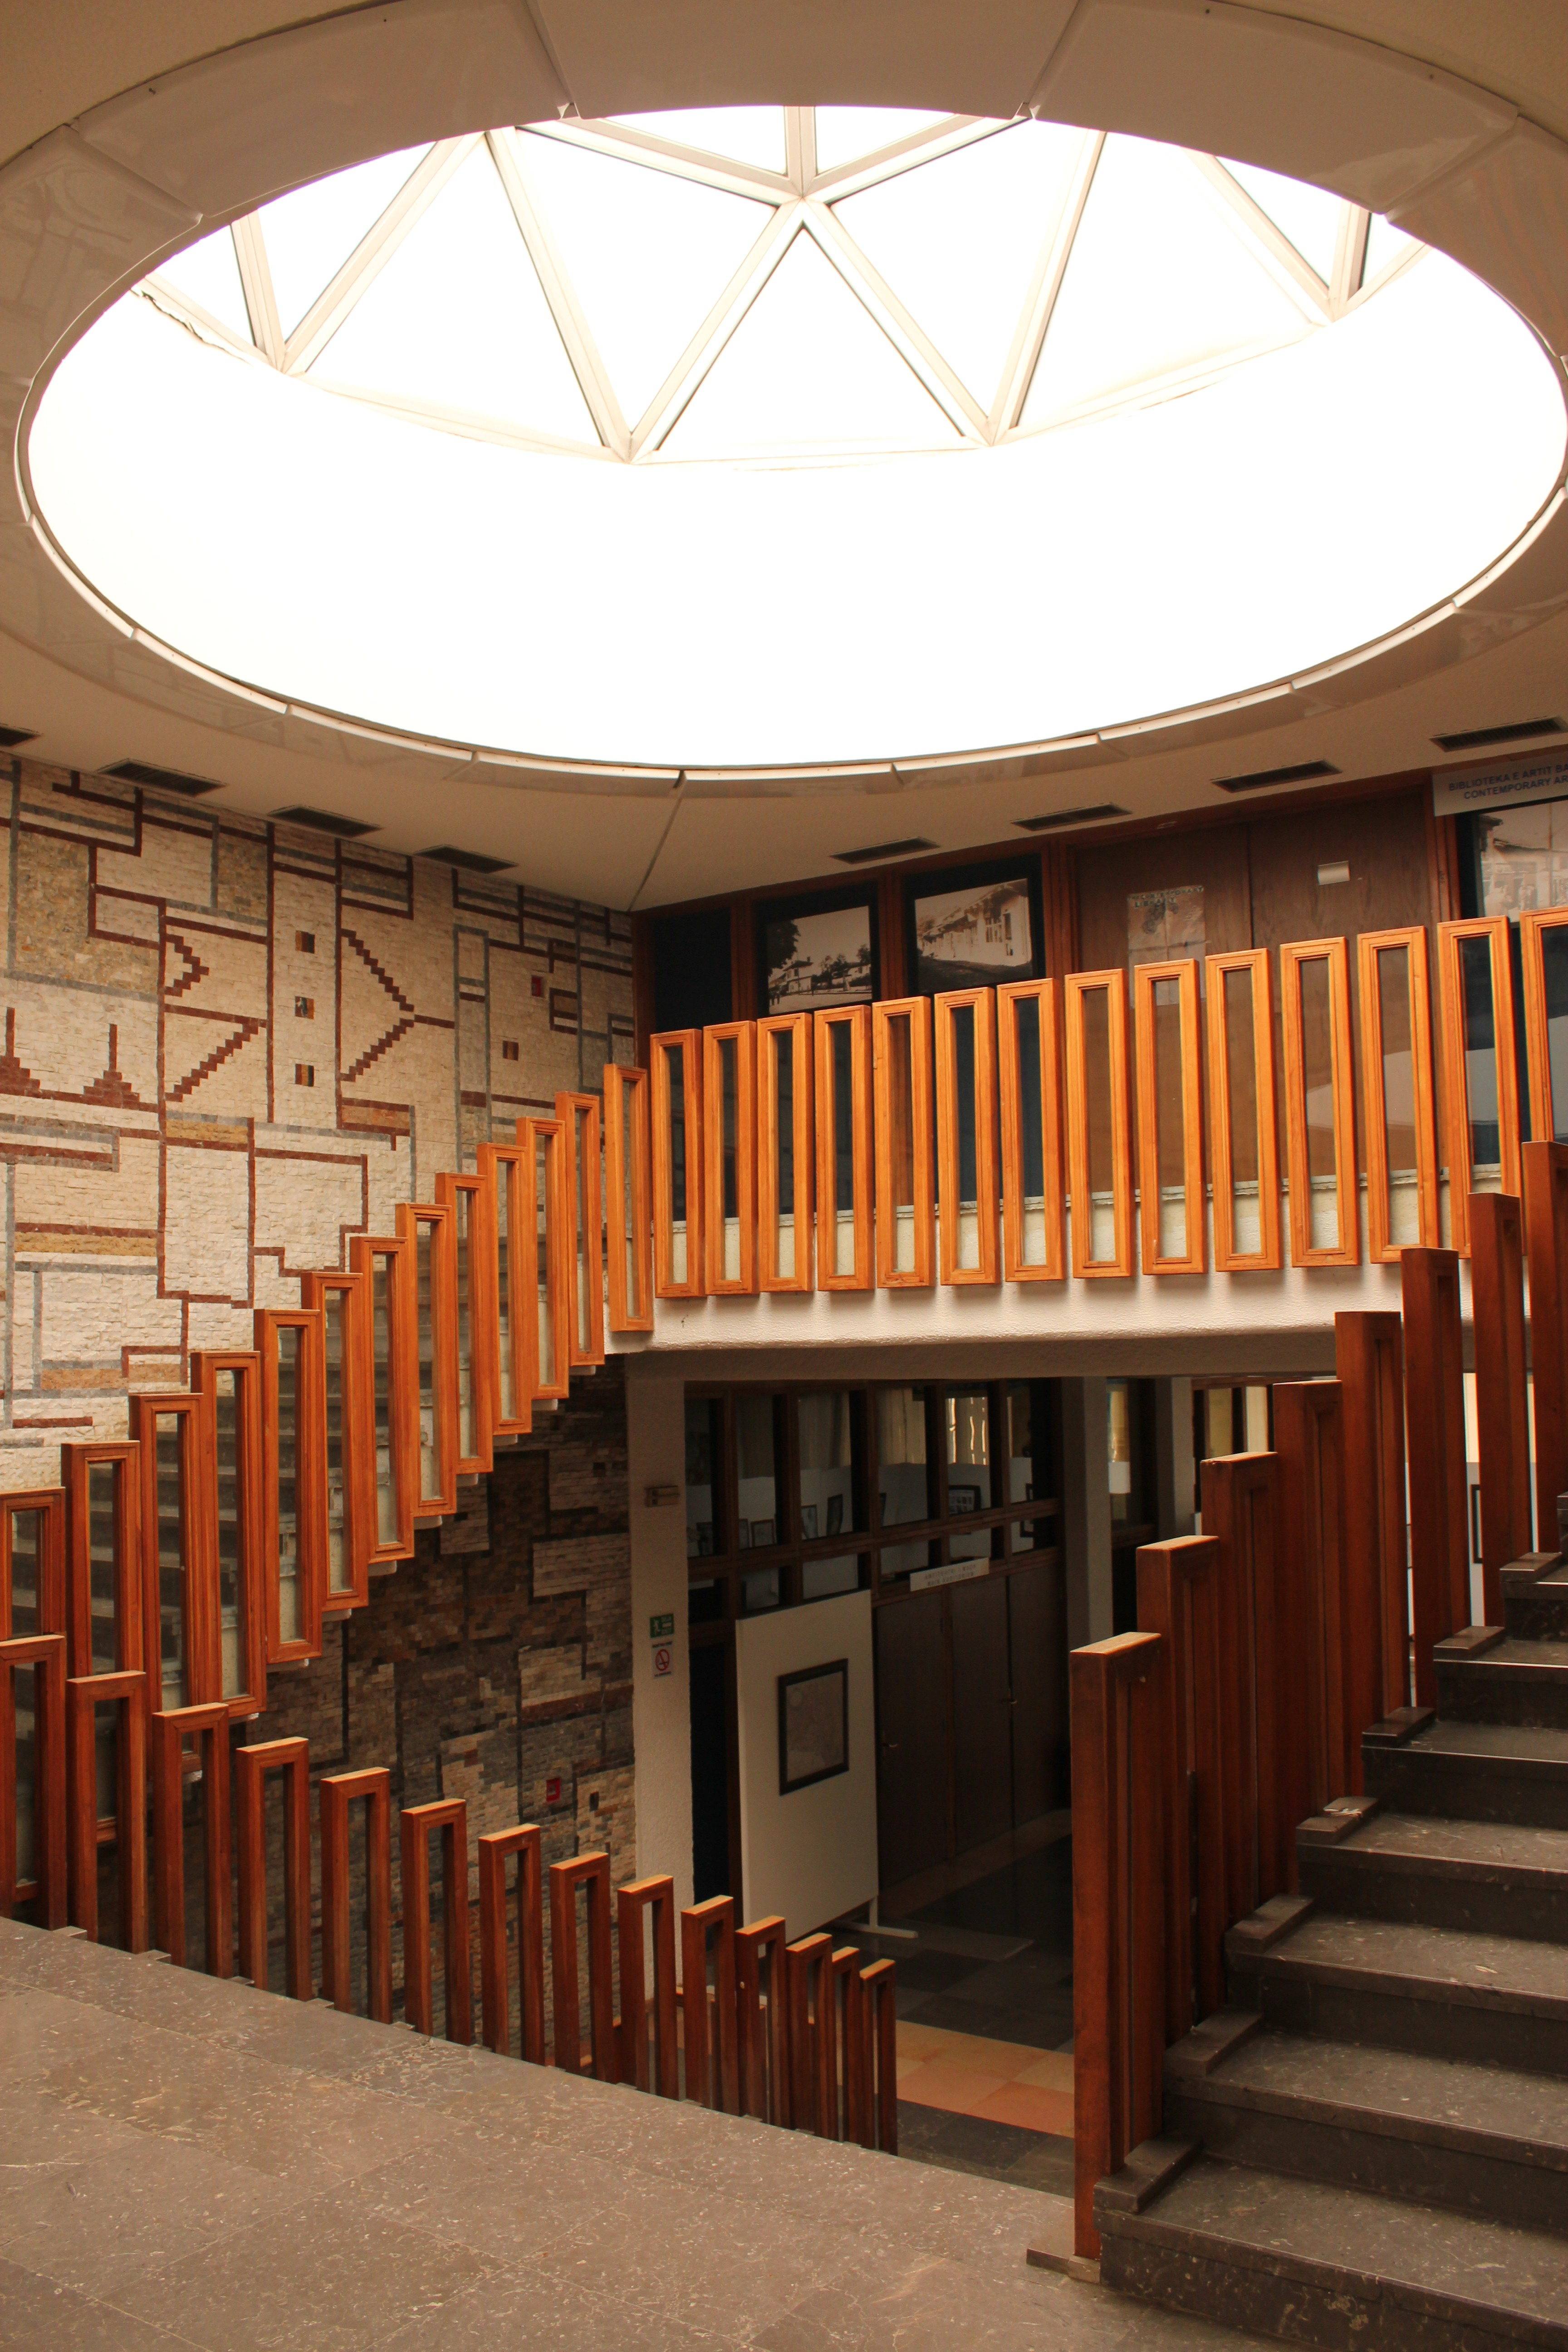 Stairwell of University Library; Pristina, Kosovo; 2013